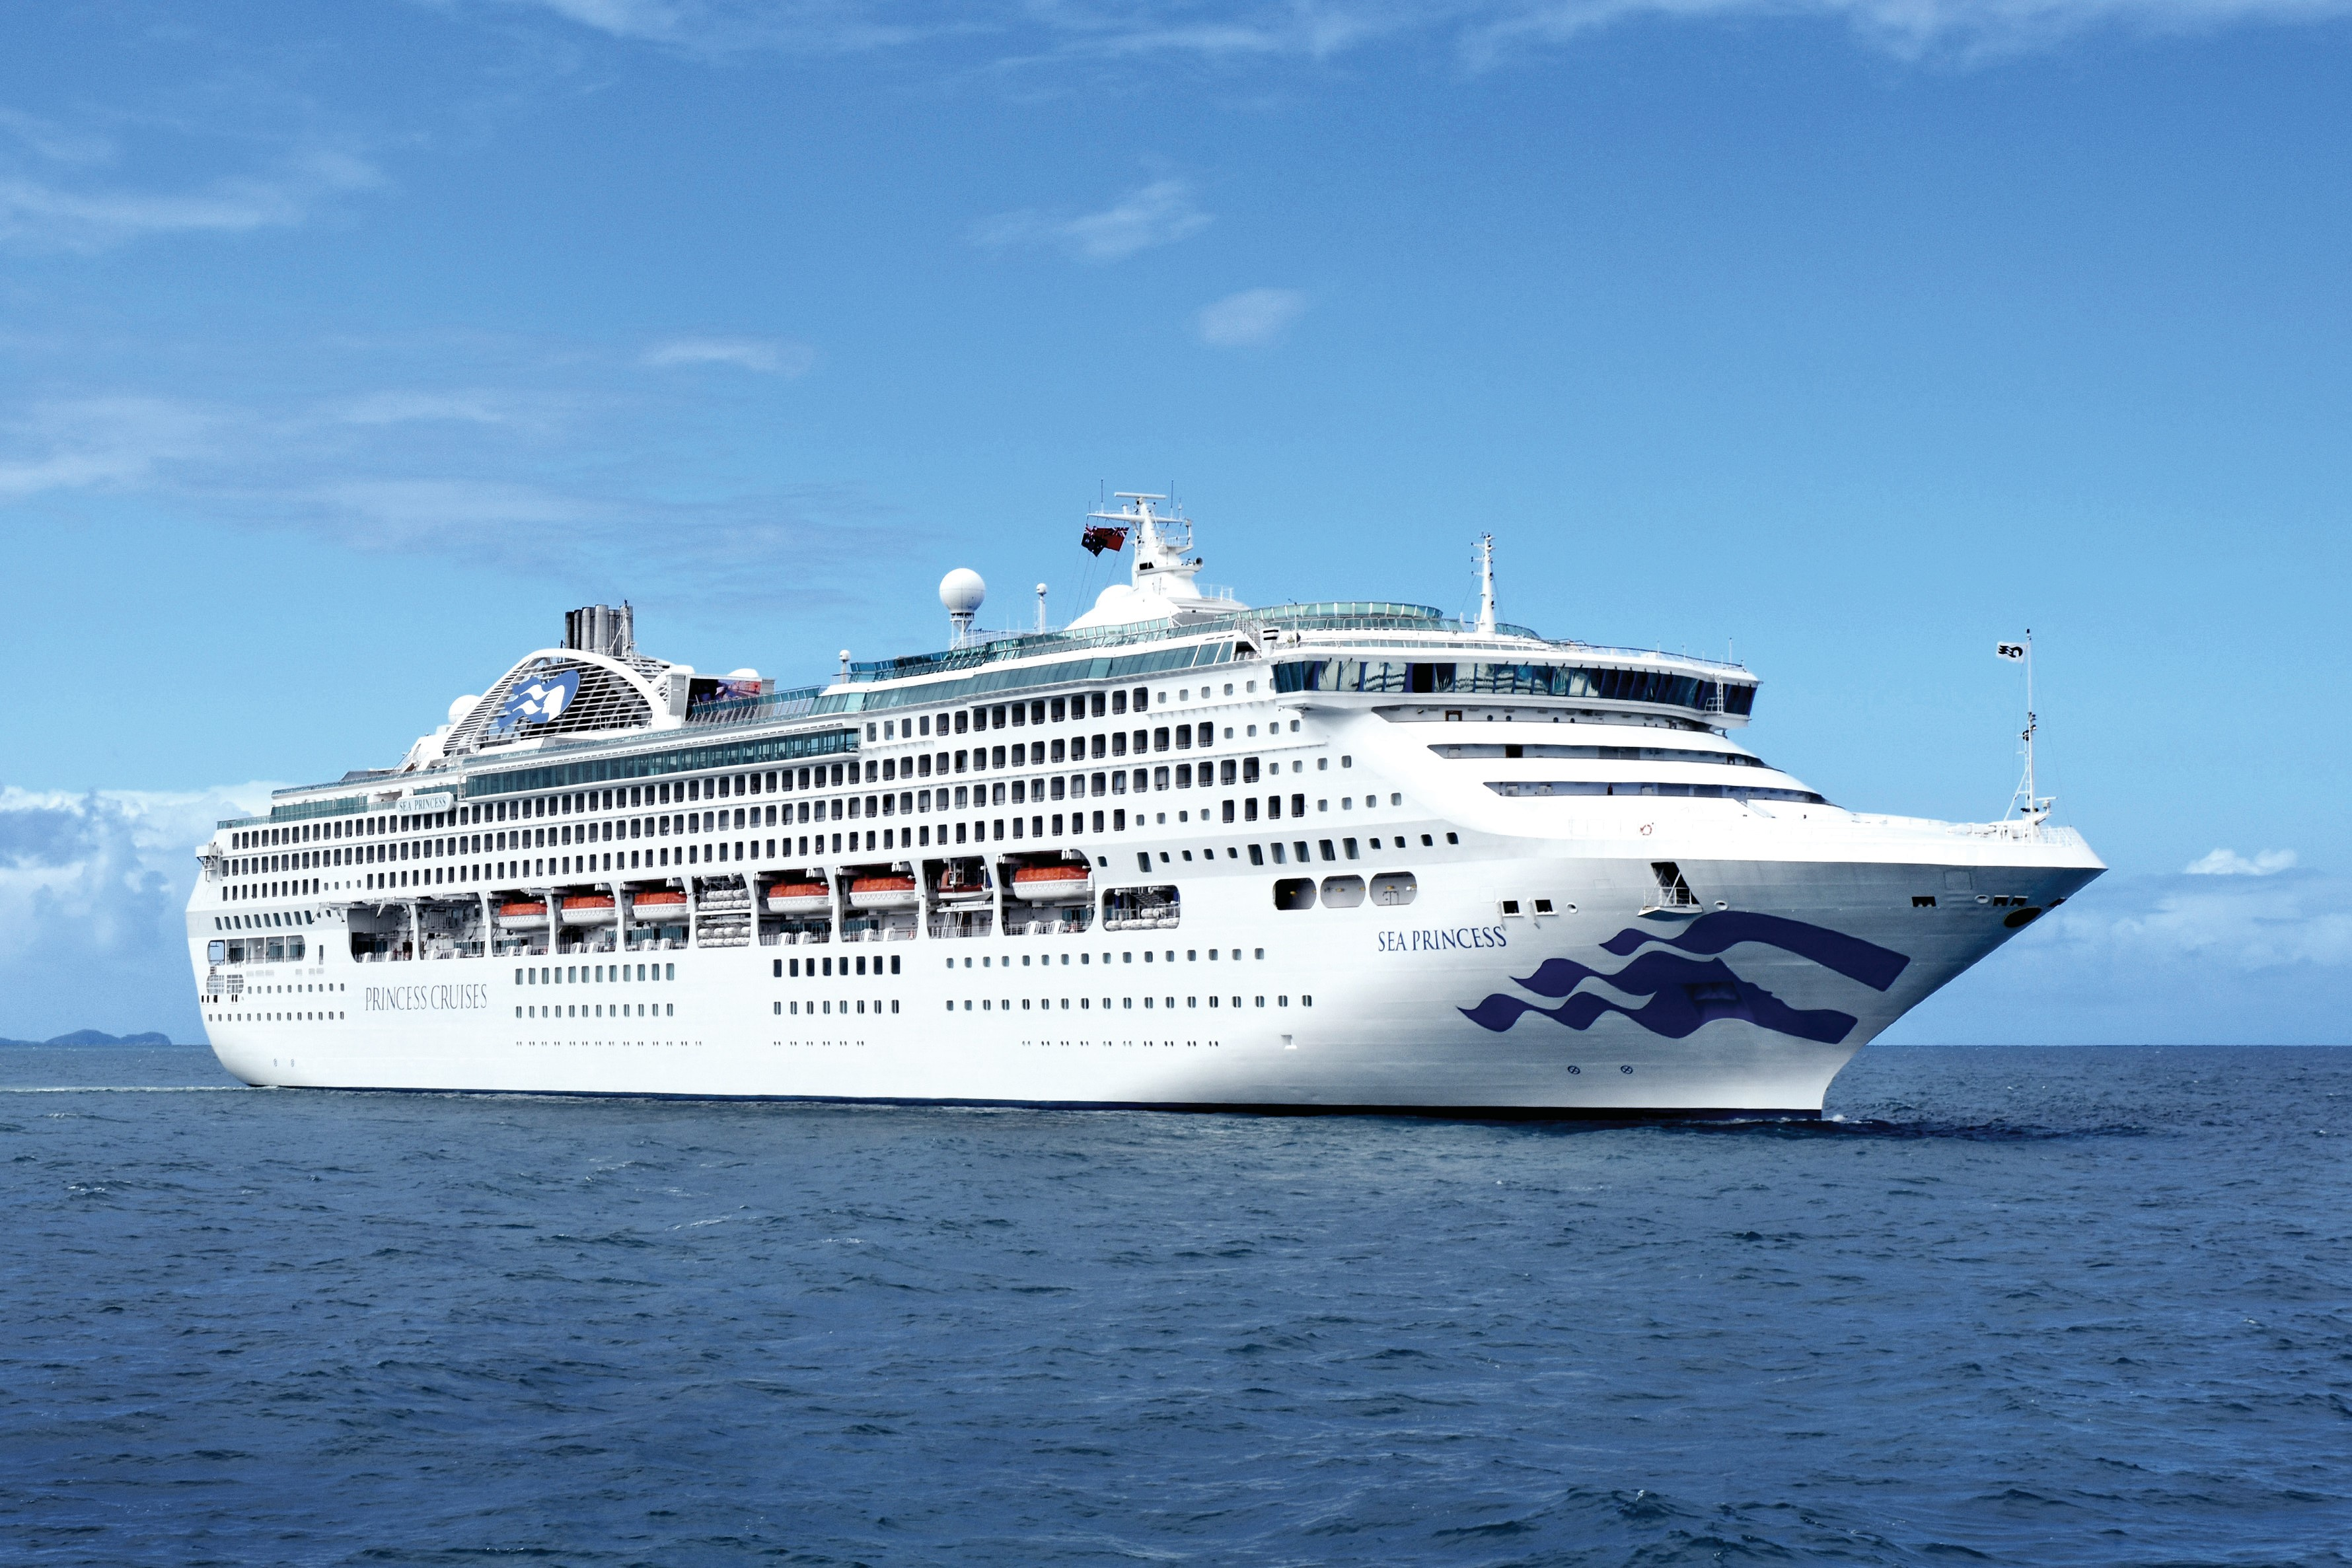 Exclusive 8 Day West Australian Photographic Cruise